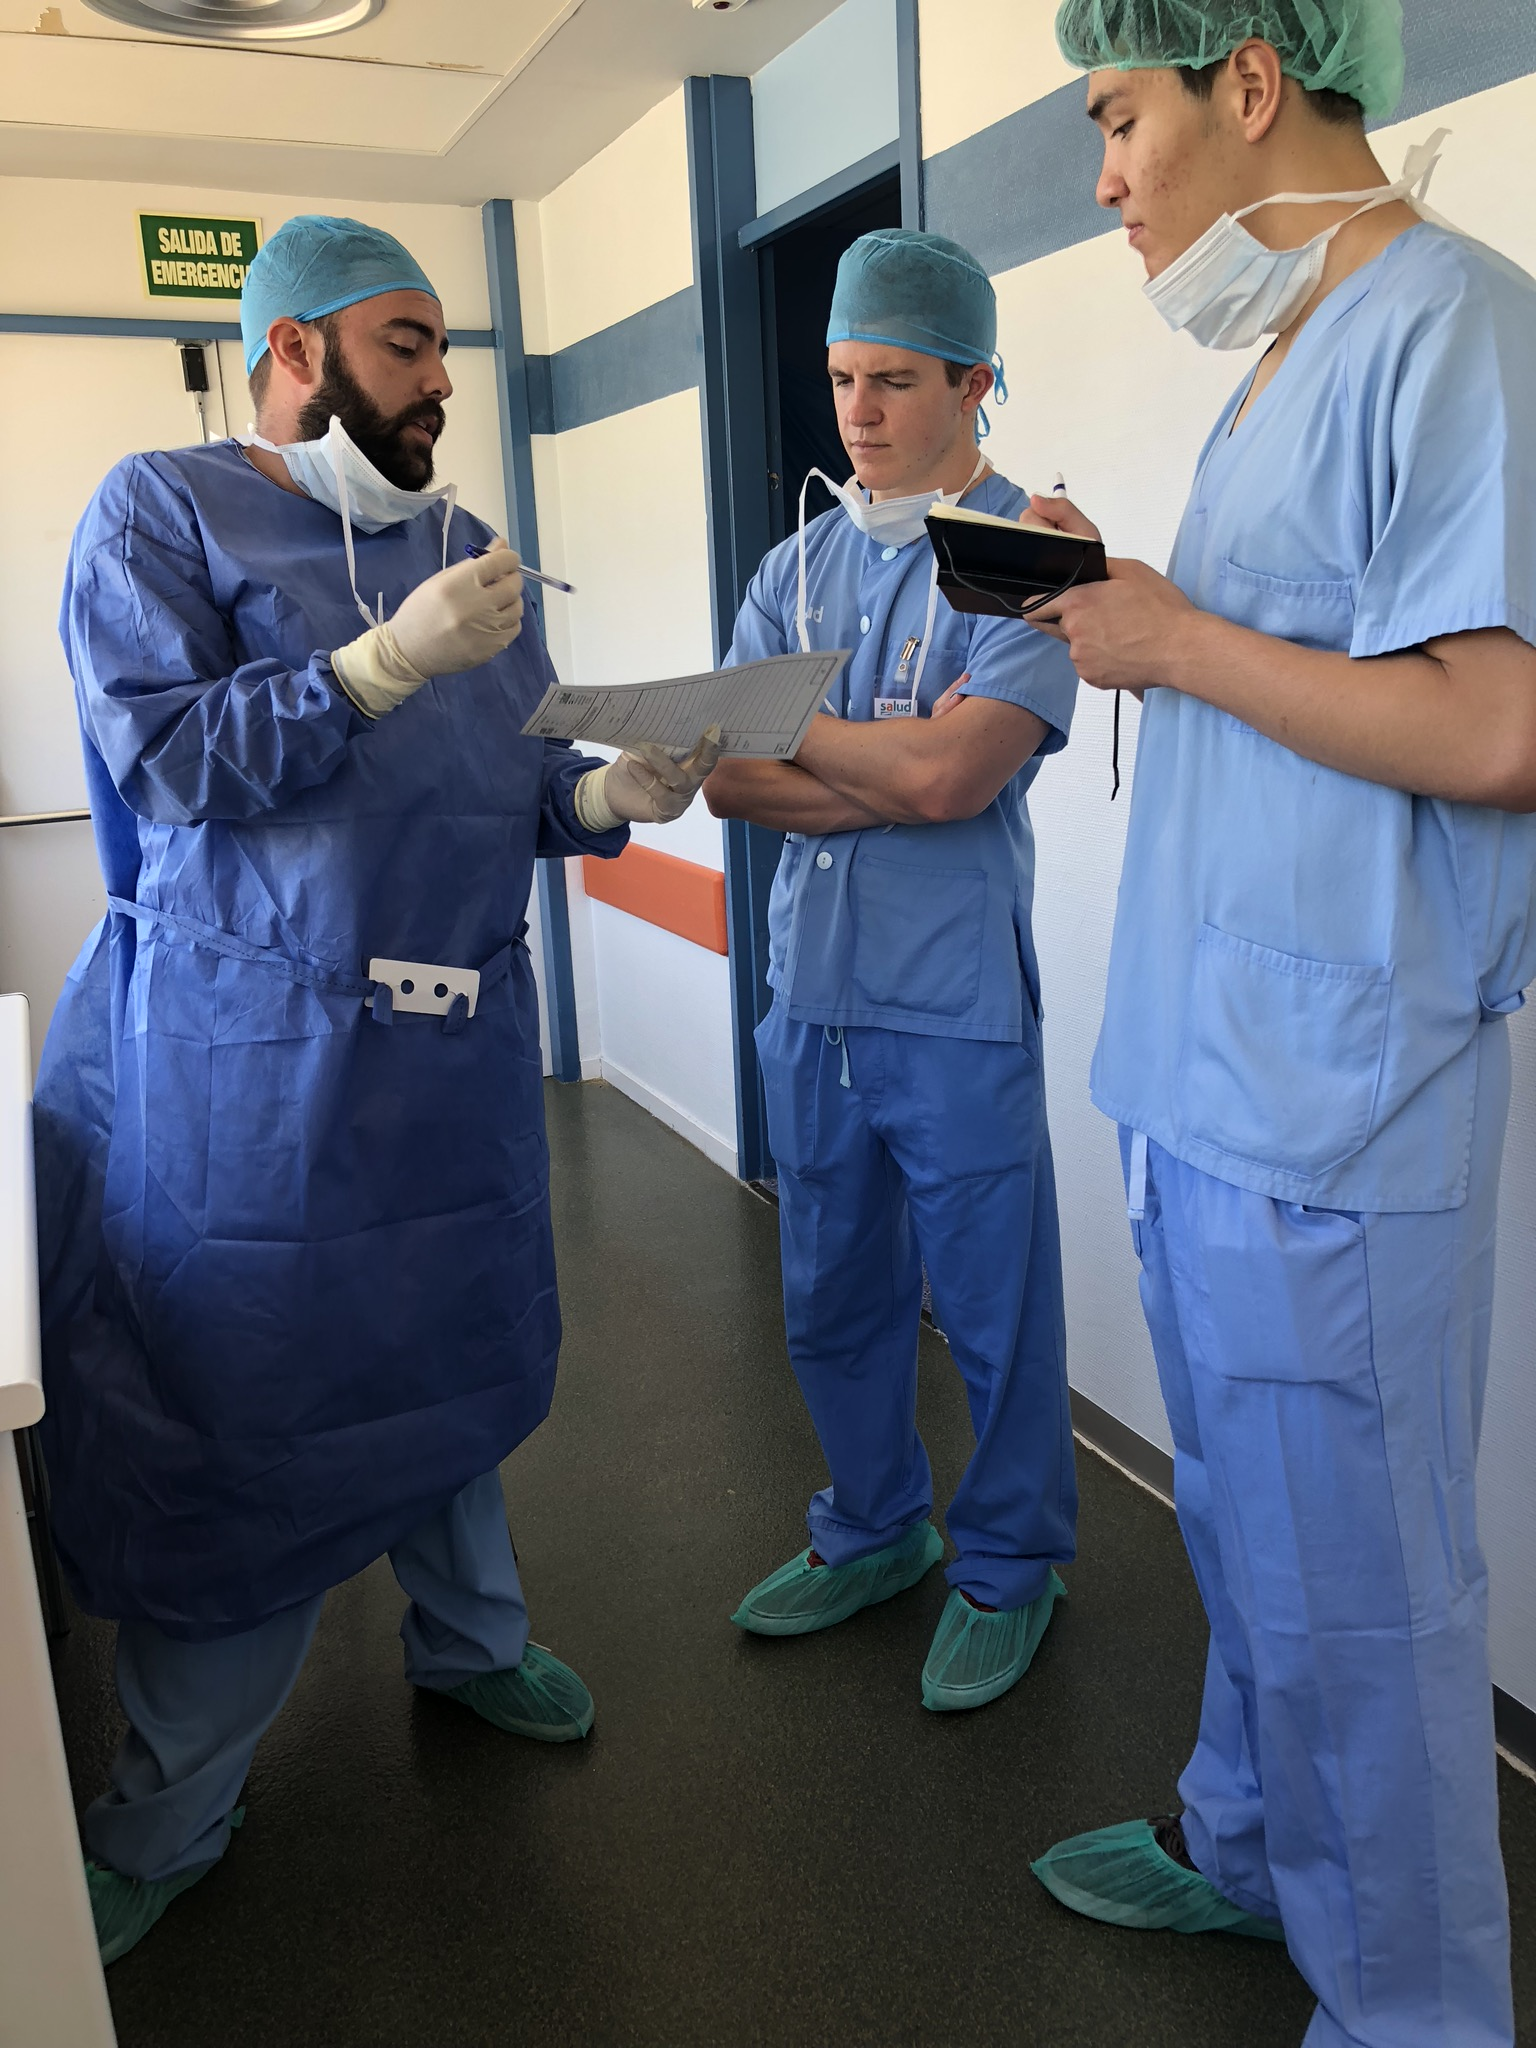 Atlantis Fellows take notes before shadowing in the OR, Hospital San Jorge, Huesca, Spain 2018